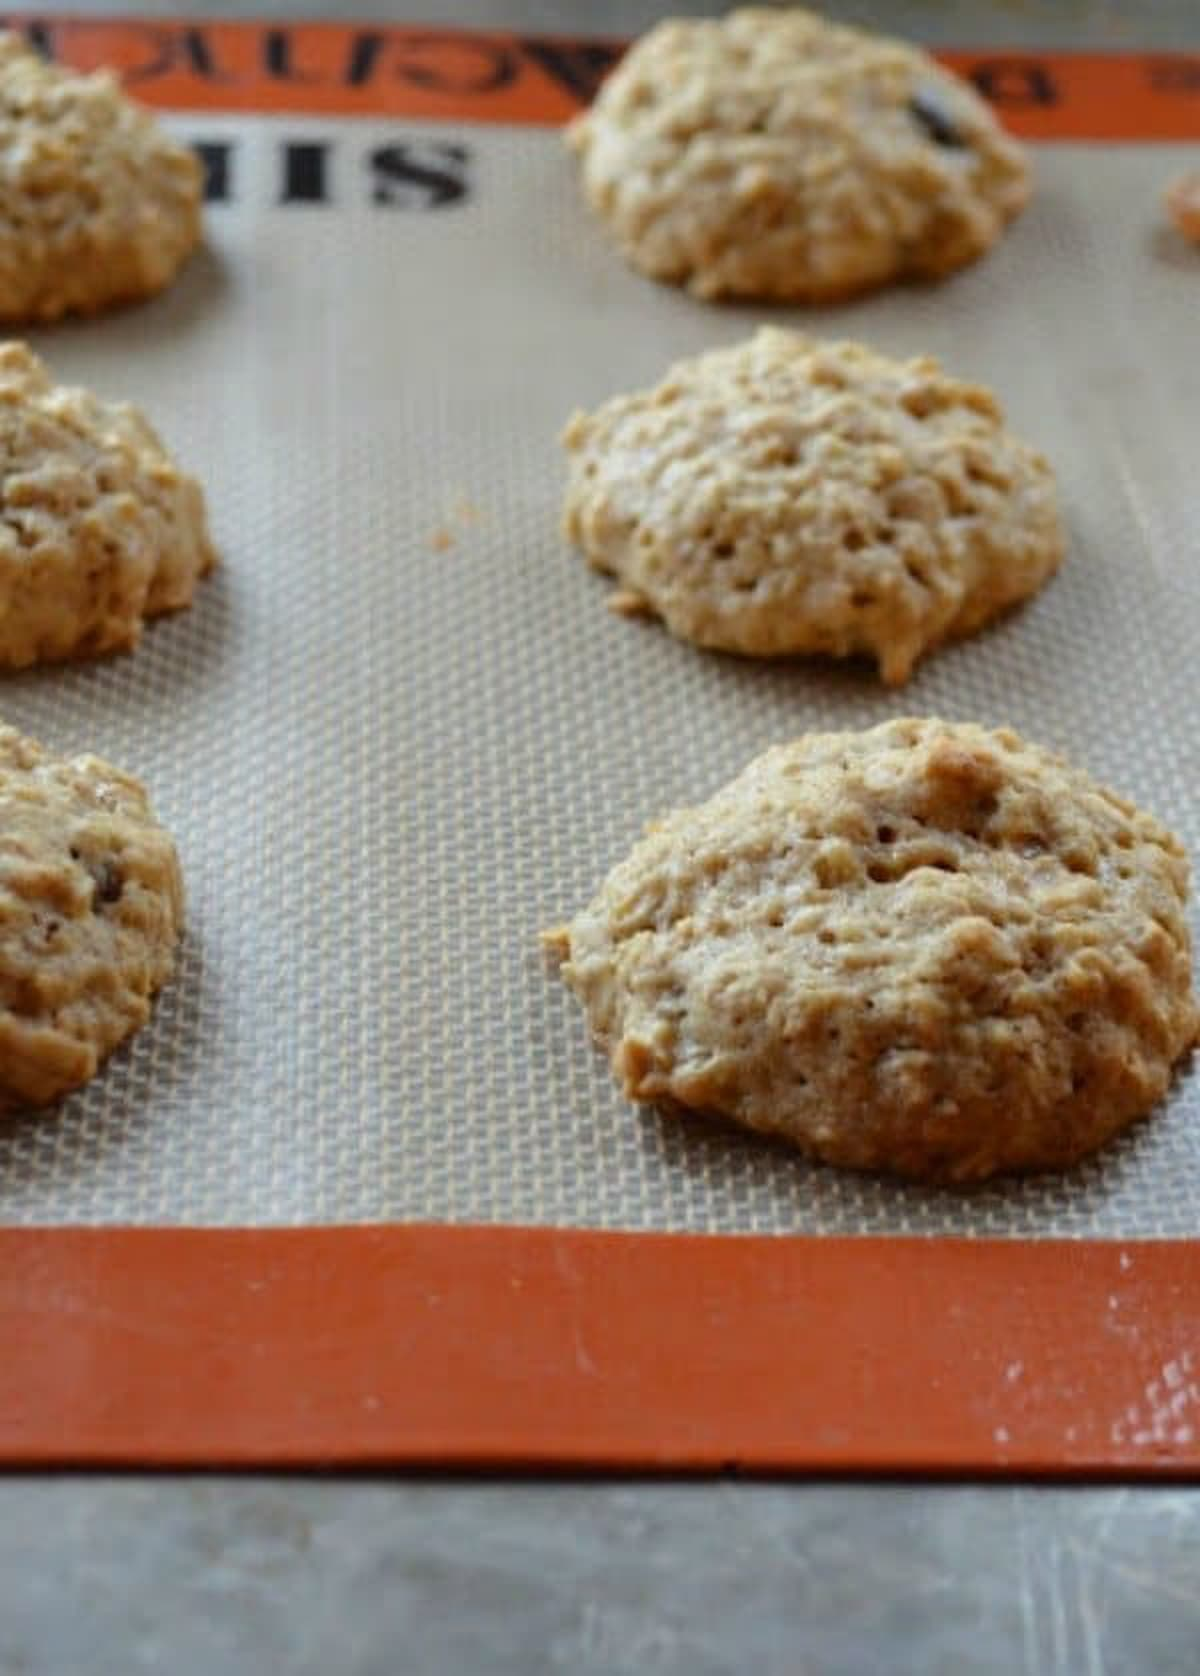 Chewy Spiced Oatmeal Raisin Cookies on Silpat lined baking sheet from Serena Bakes Simply From Scratch.